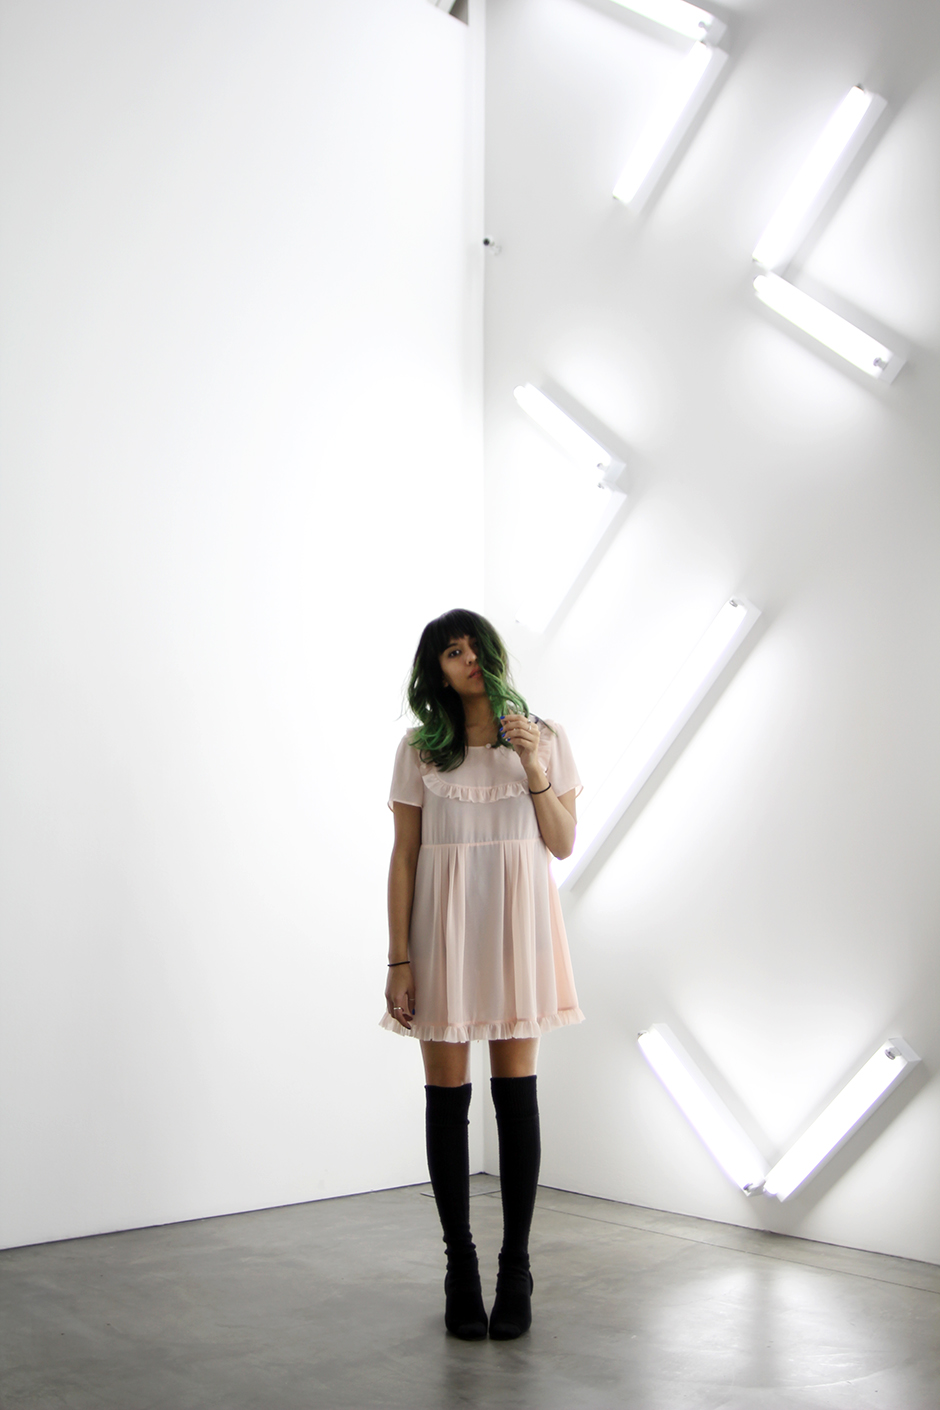 Musuem of Contemporary Art San Diego, Courtney Love x Nasty Gal pink baby doll dress, black thigh highs, green hair